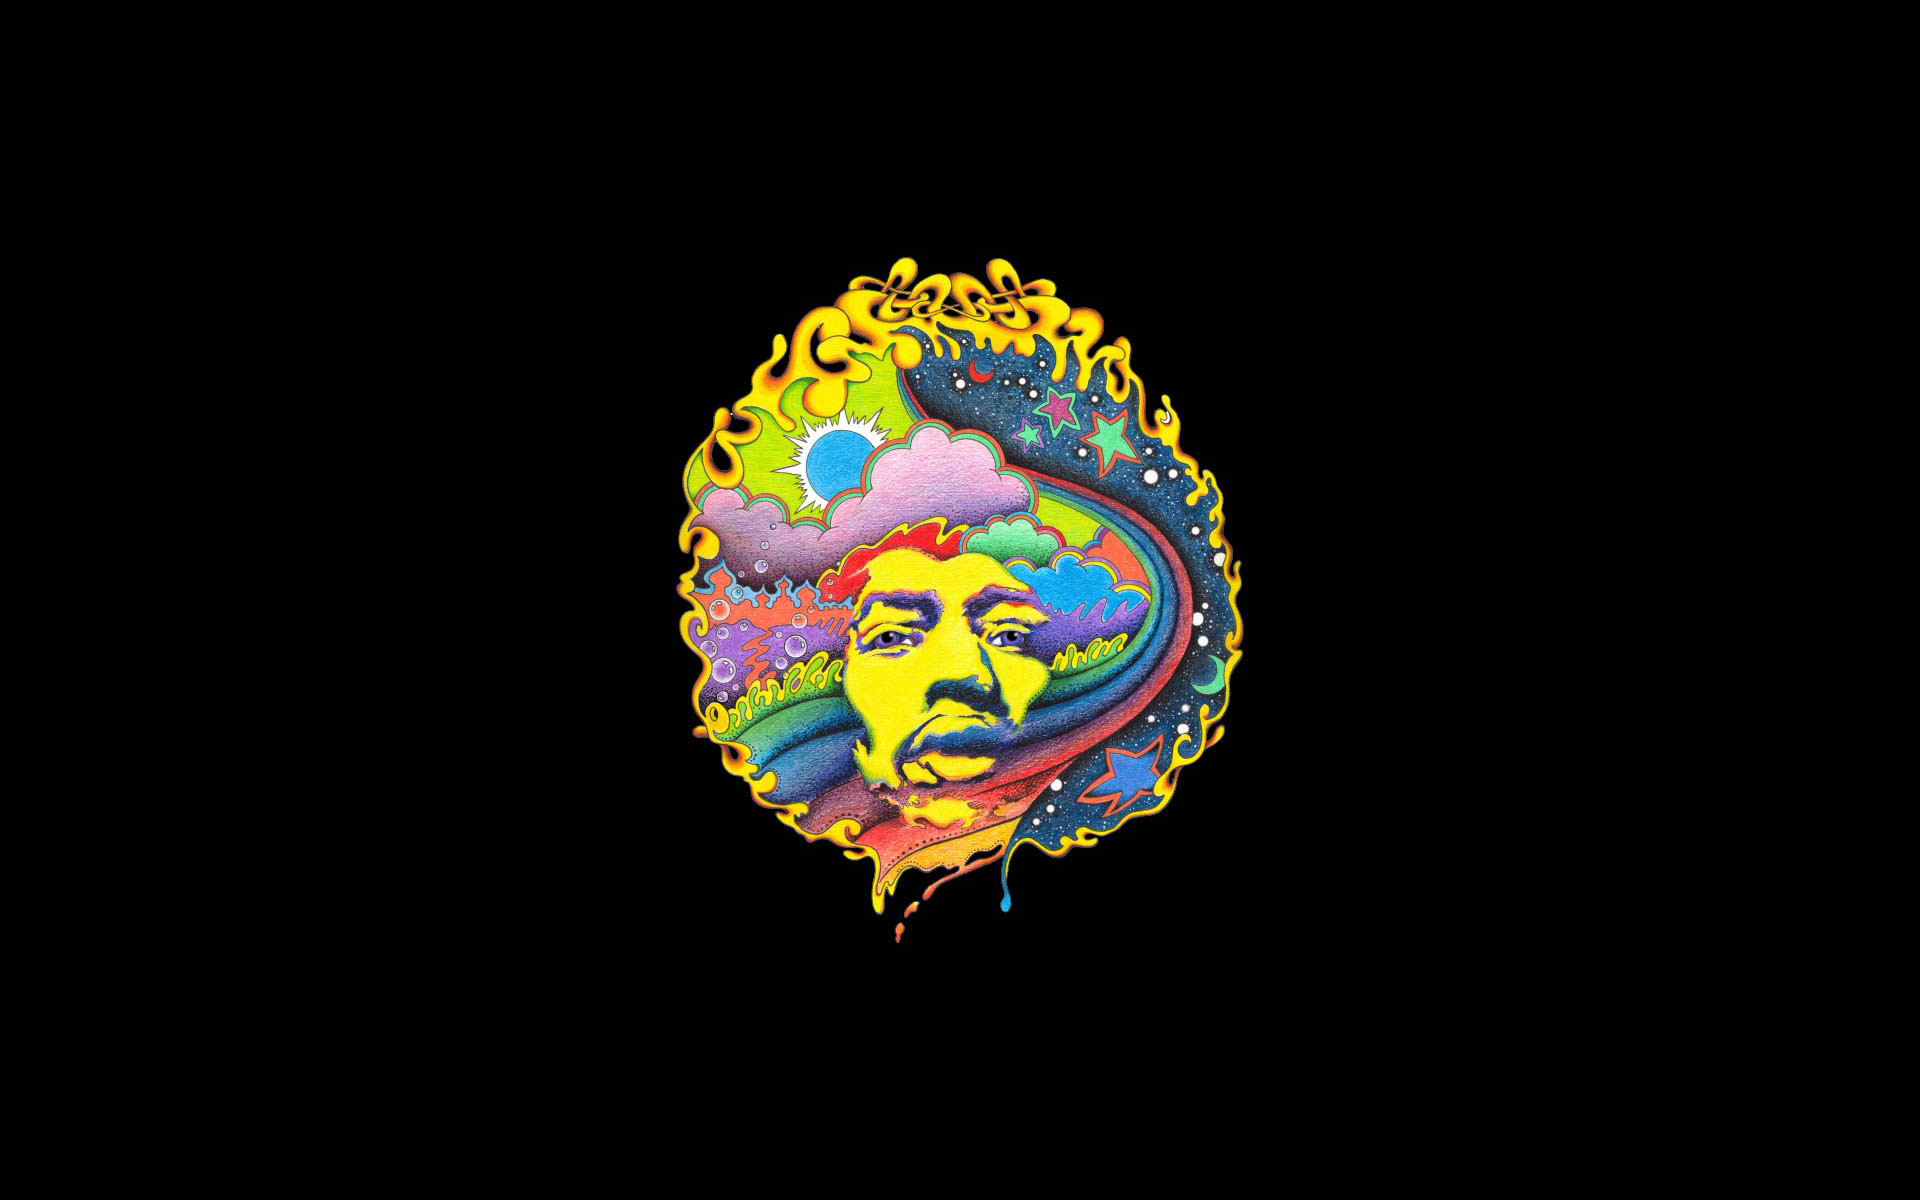 Abstract Psychedelic Art Parallax Hd Iphone: Jimi Hendrix Wallpapers (65+ Images